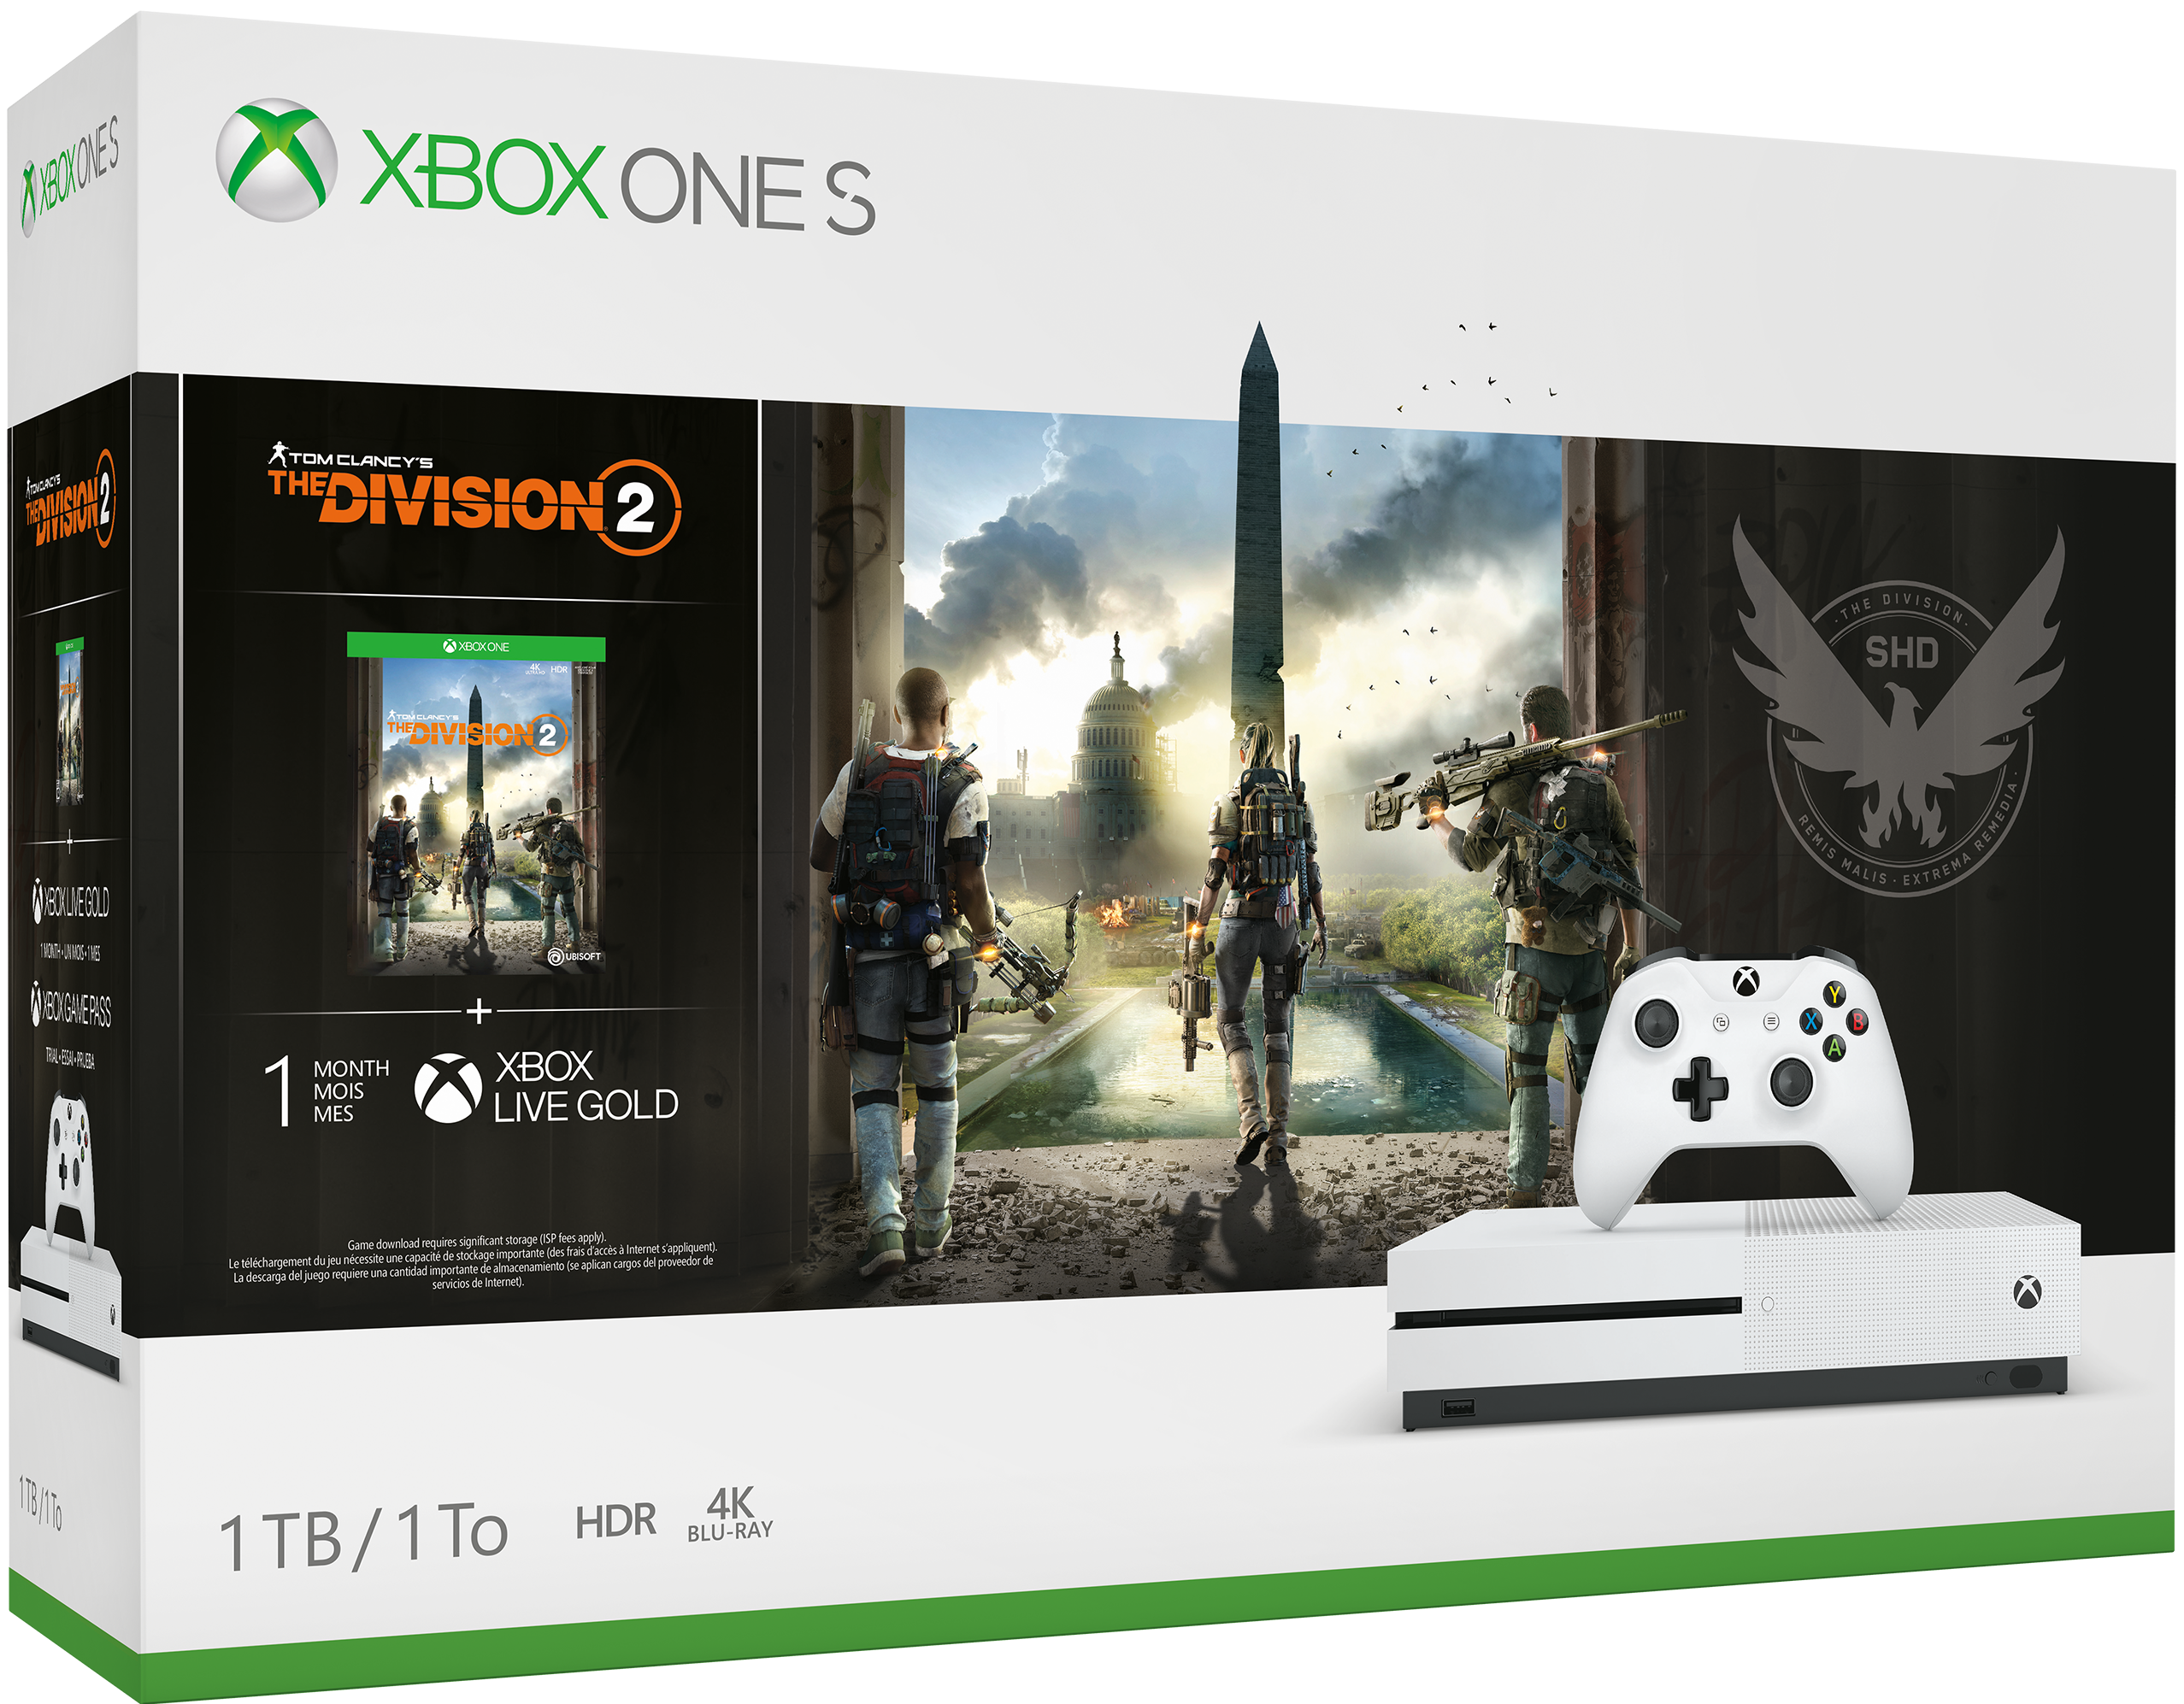 Grafica della confezione bundle Xbox One S Tom Clancy's The Division 2